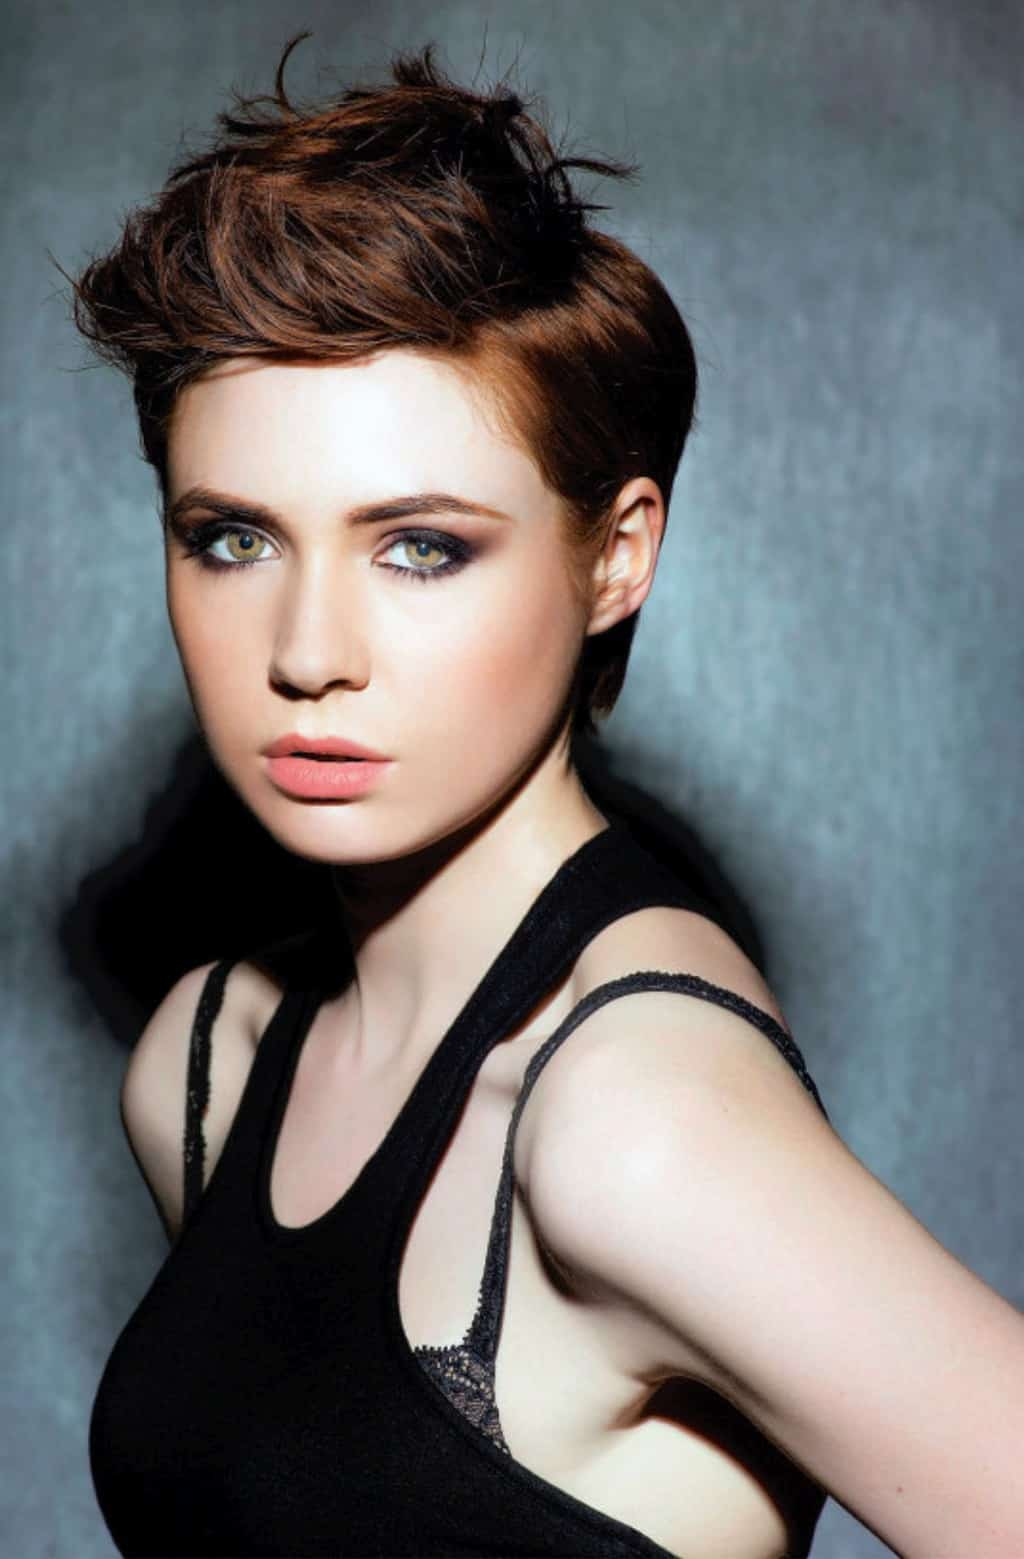 10 Celebrities With Short Hair You Need To Check Now